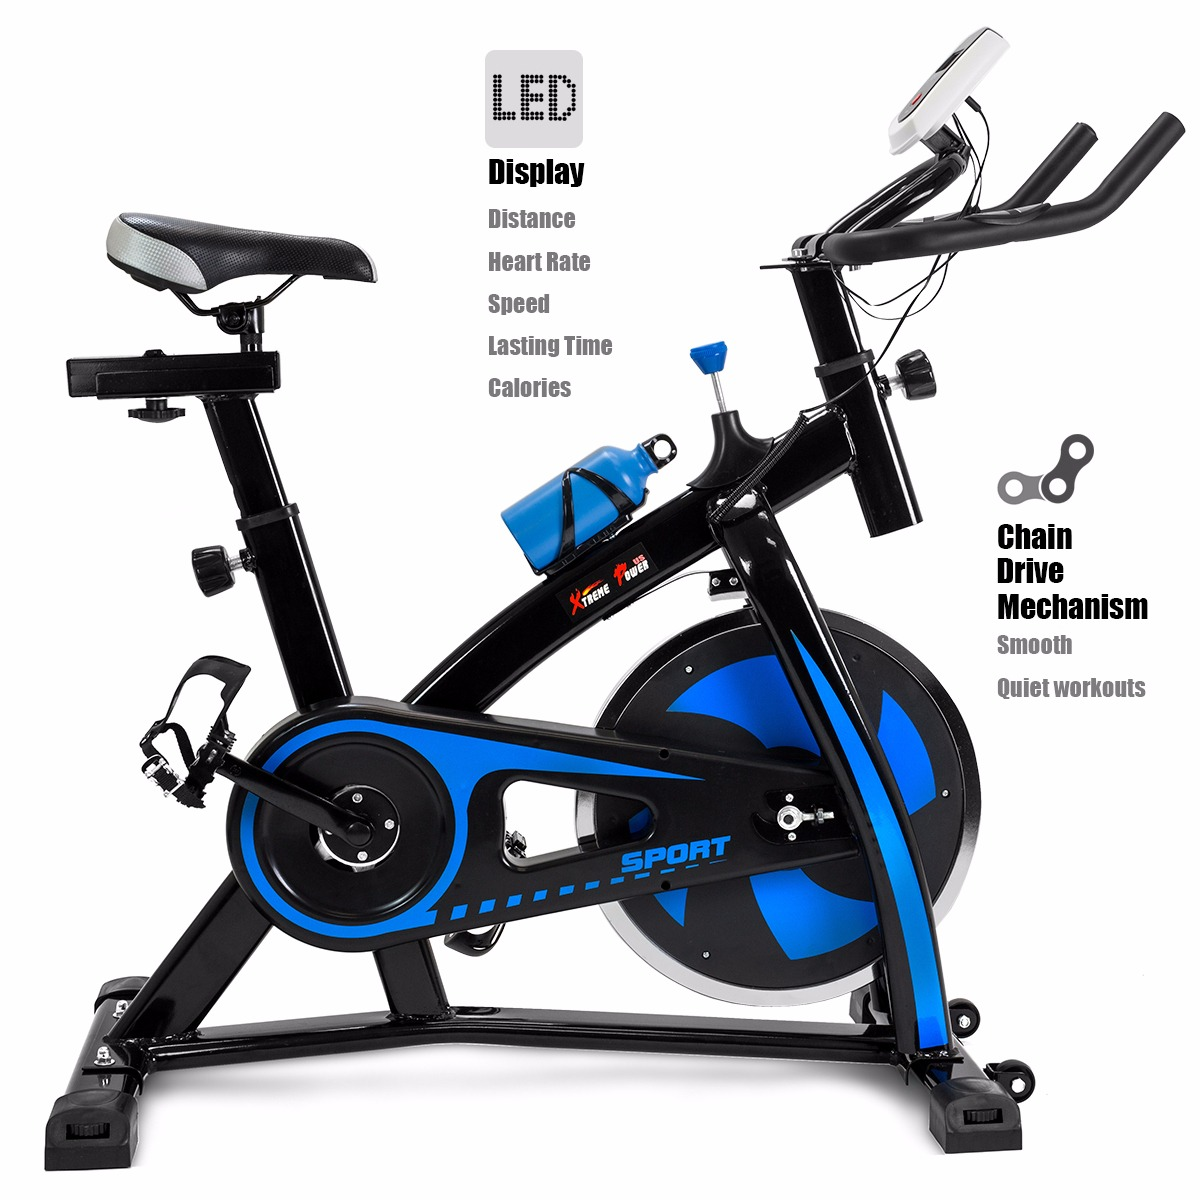 XtremepowerUS Exercise Bike Stationary Cycling Cardio Workout Fitness LED Screen Blue